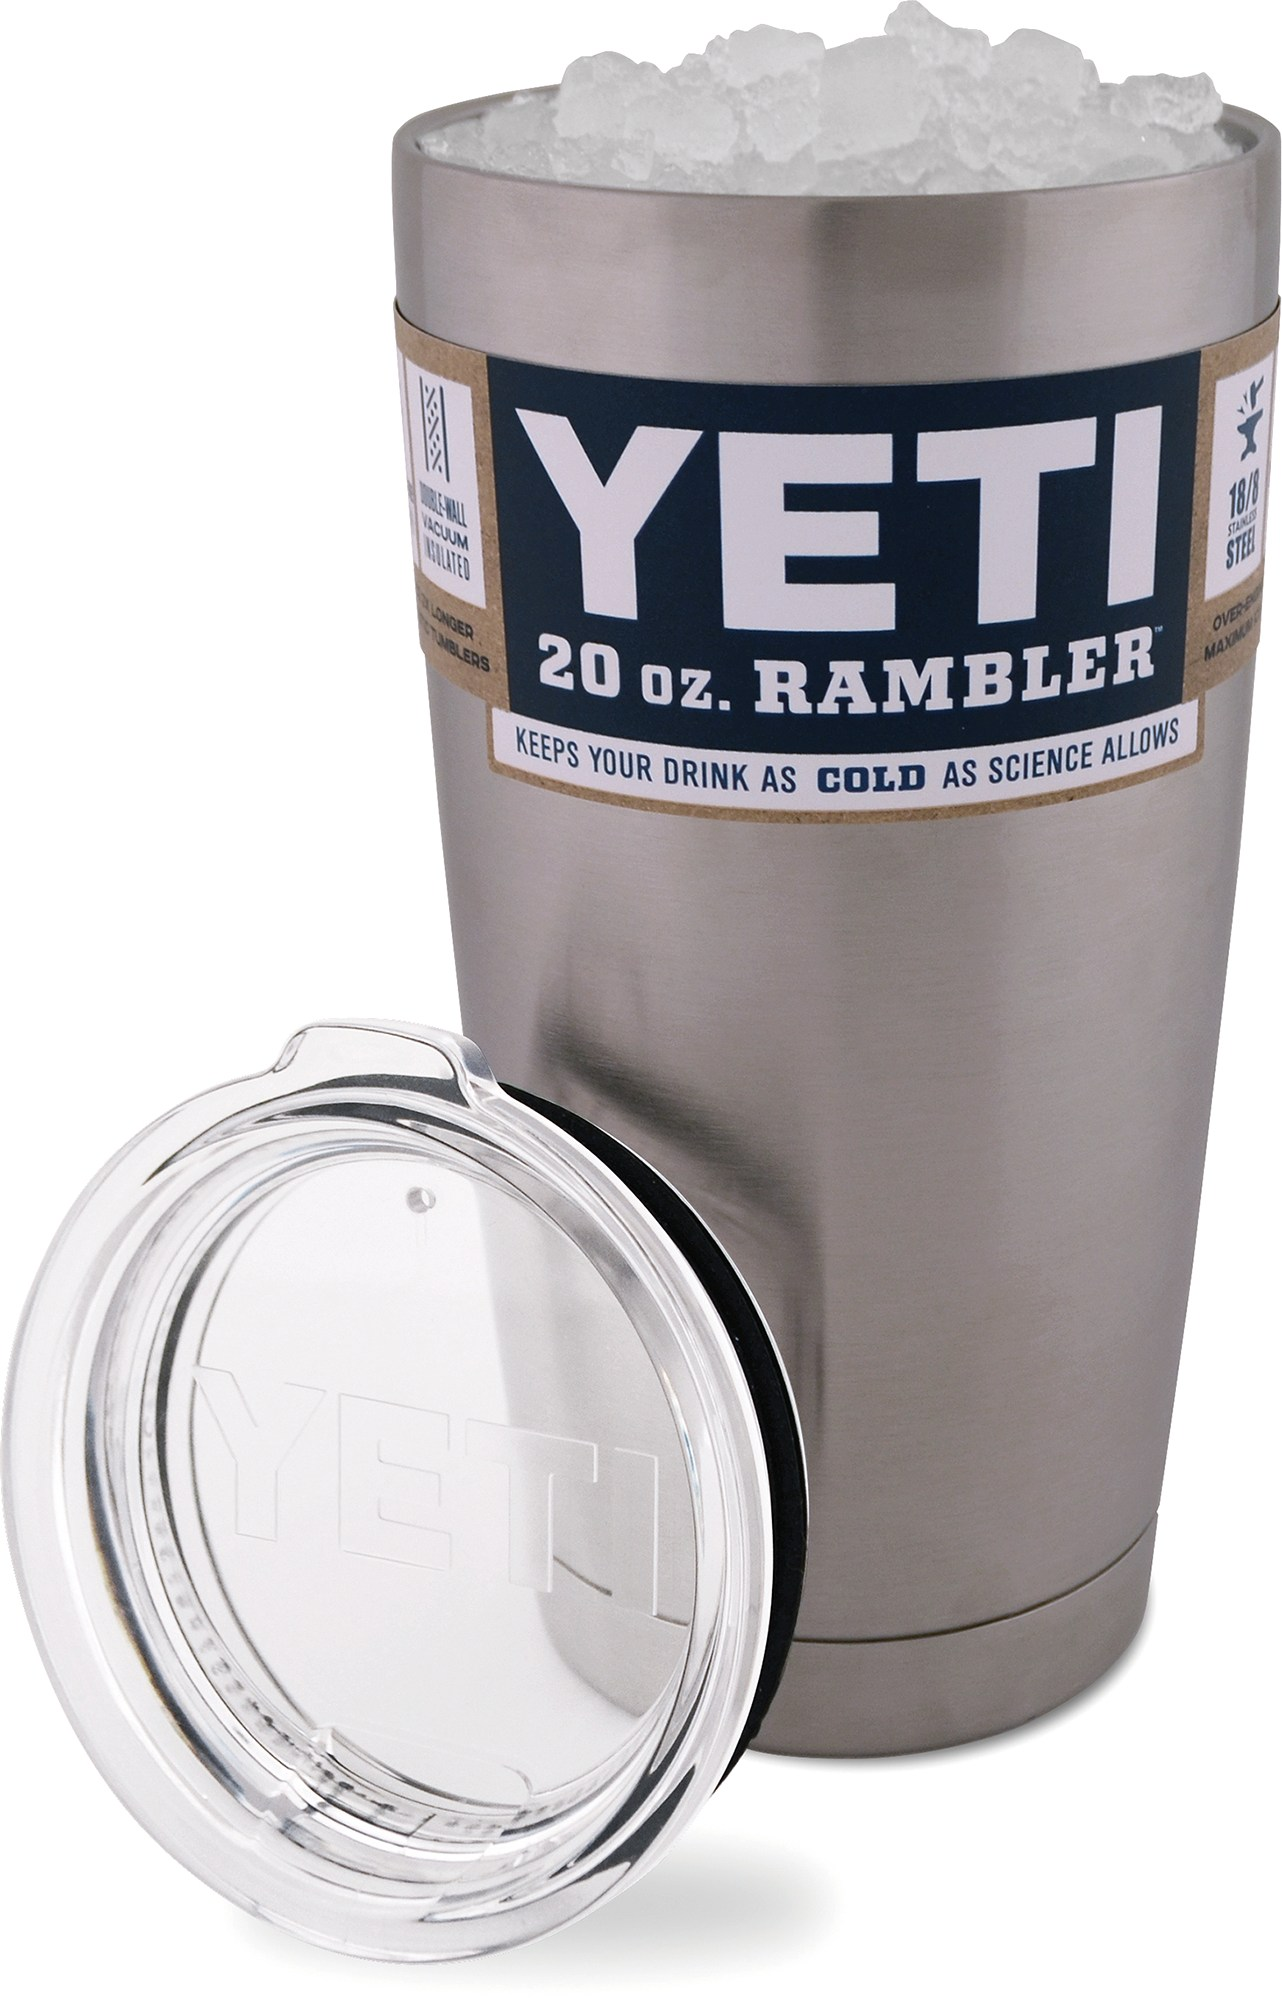 Image of: Yeti Coffee Mug Size